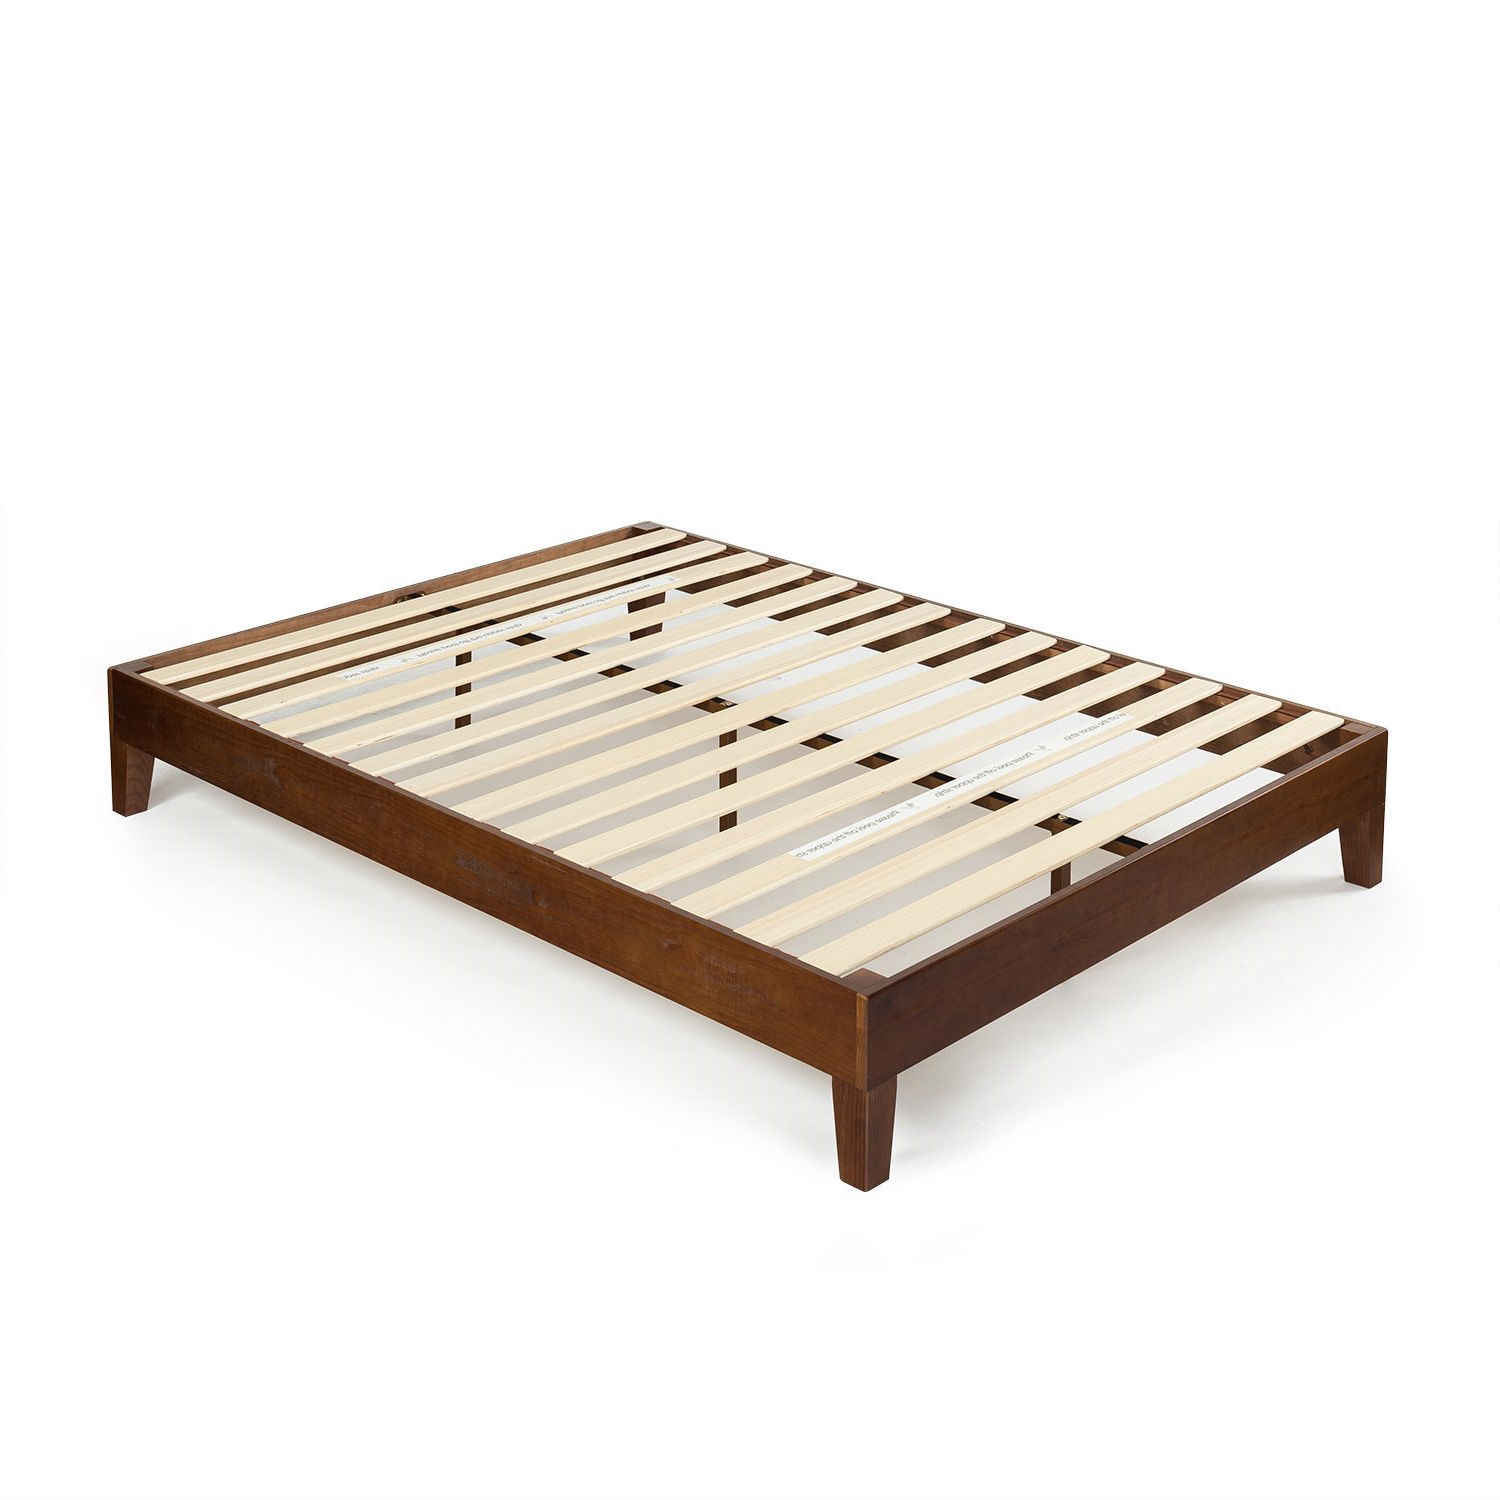 Full Size Low Profile Solid Wood Platform Bed Frame In Espresso Finish Fastfurnishings Com